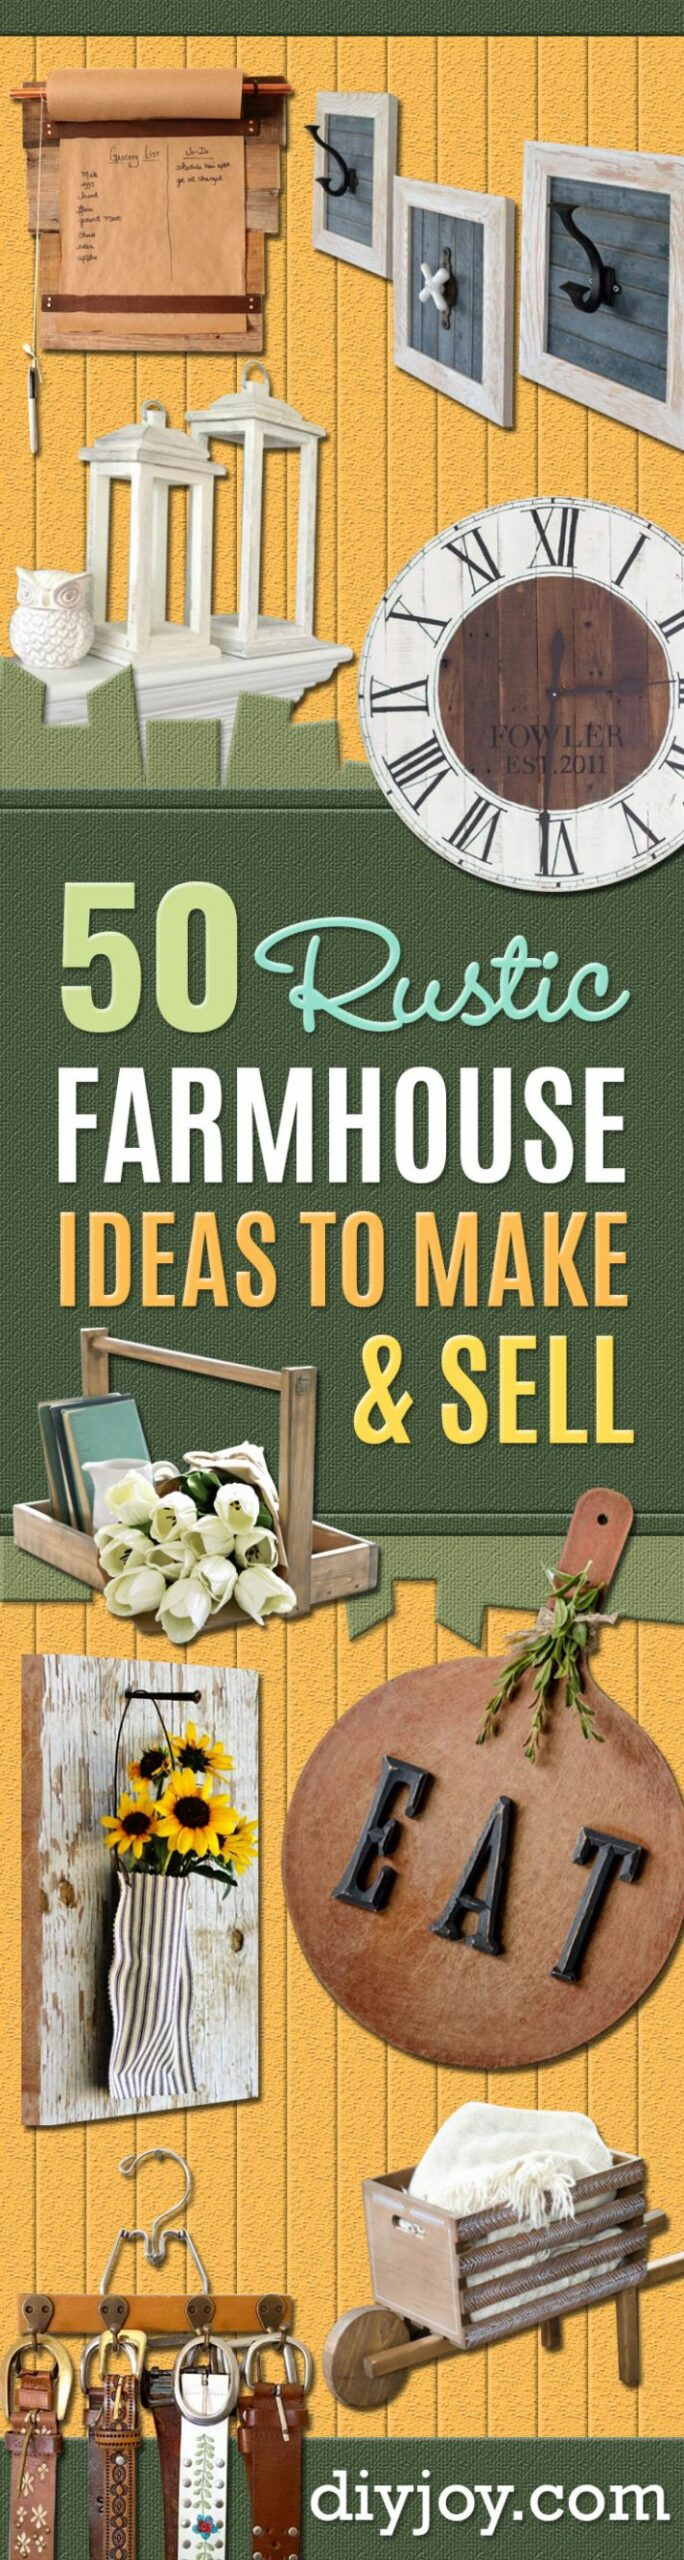 11 Rustic DIY Farmhouse Crafts to Make and Sell - diy home decor to sell